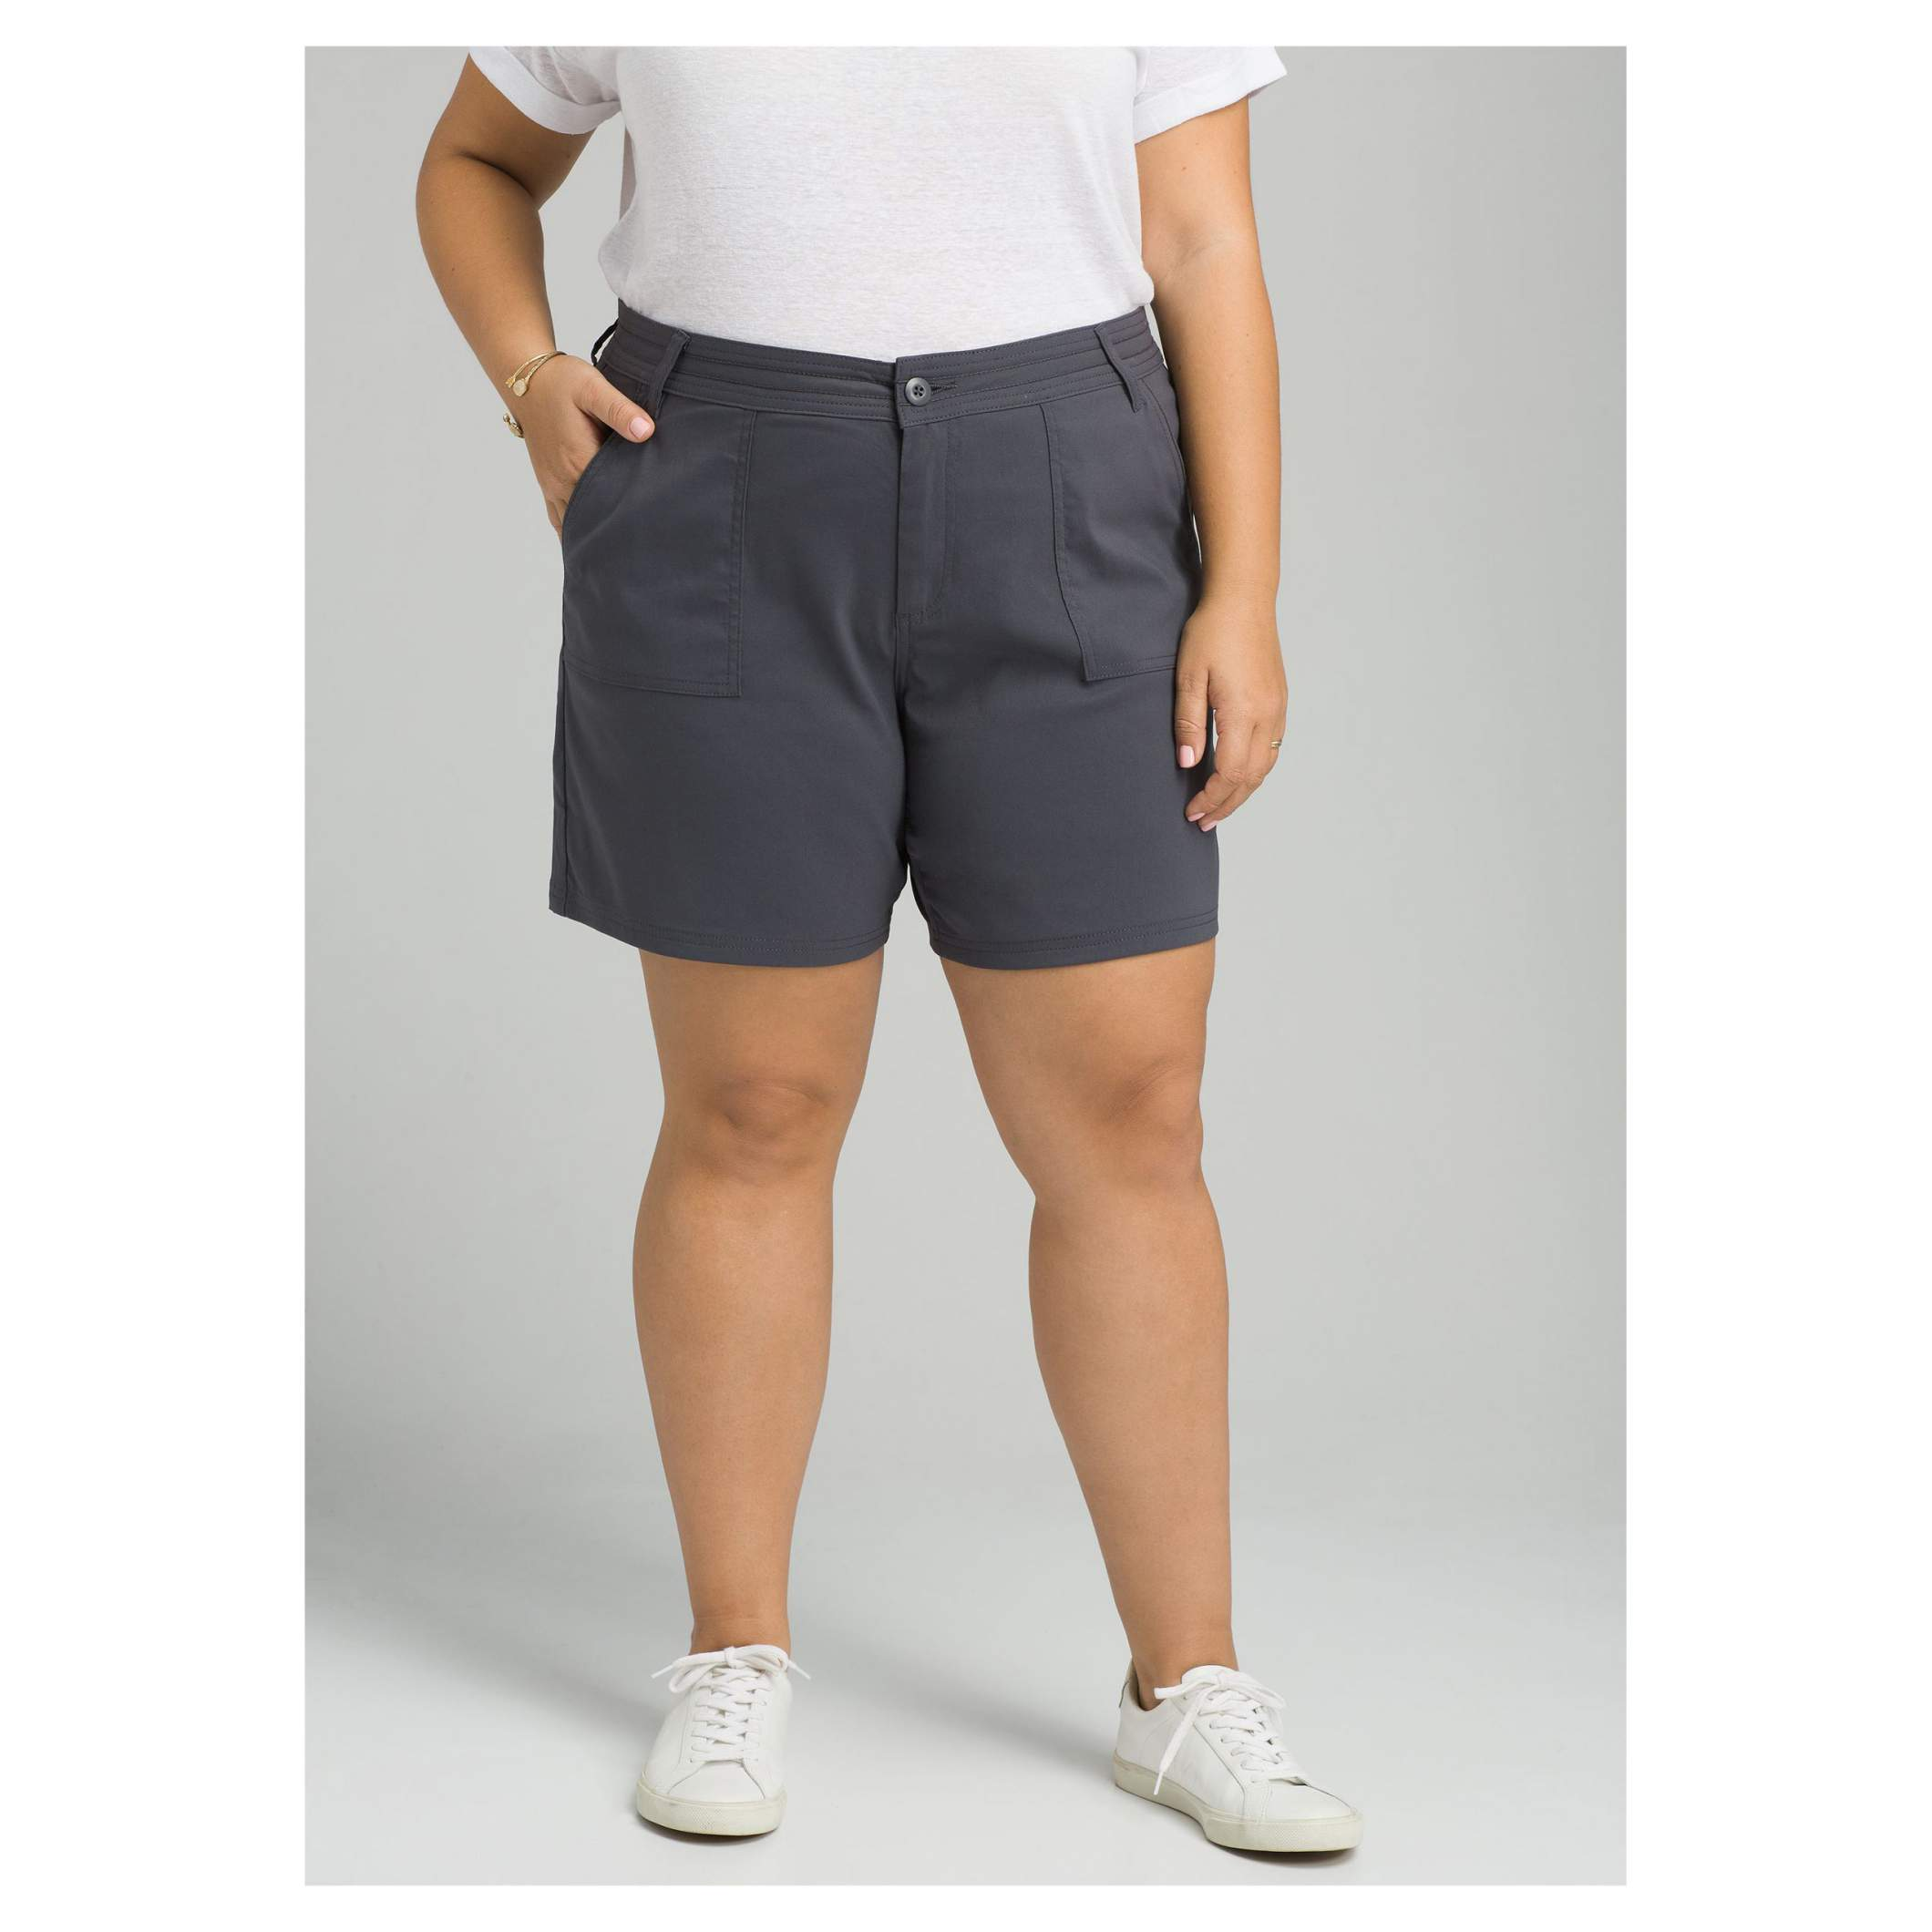 Olivia Short Plus 7 in Inseam - Women's